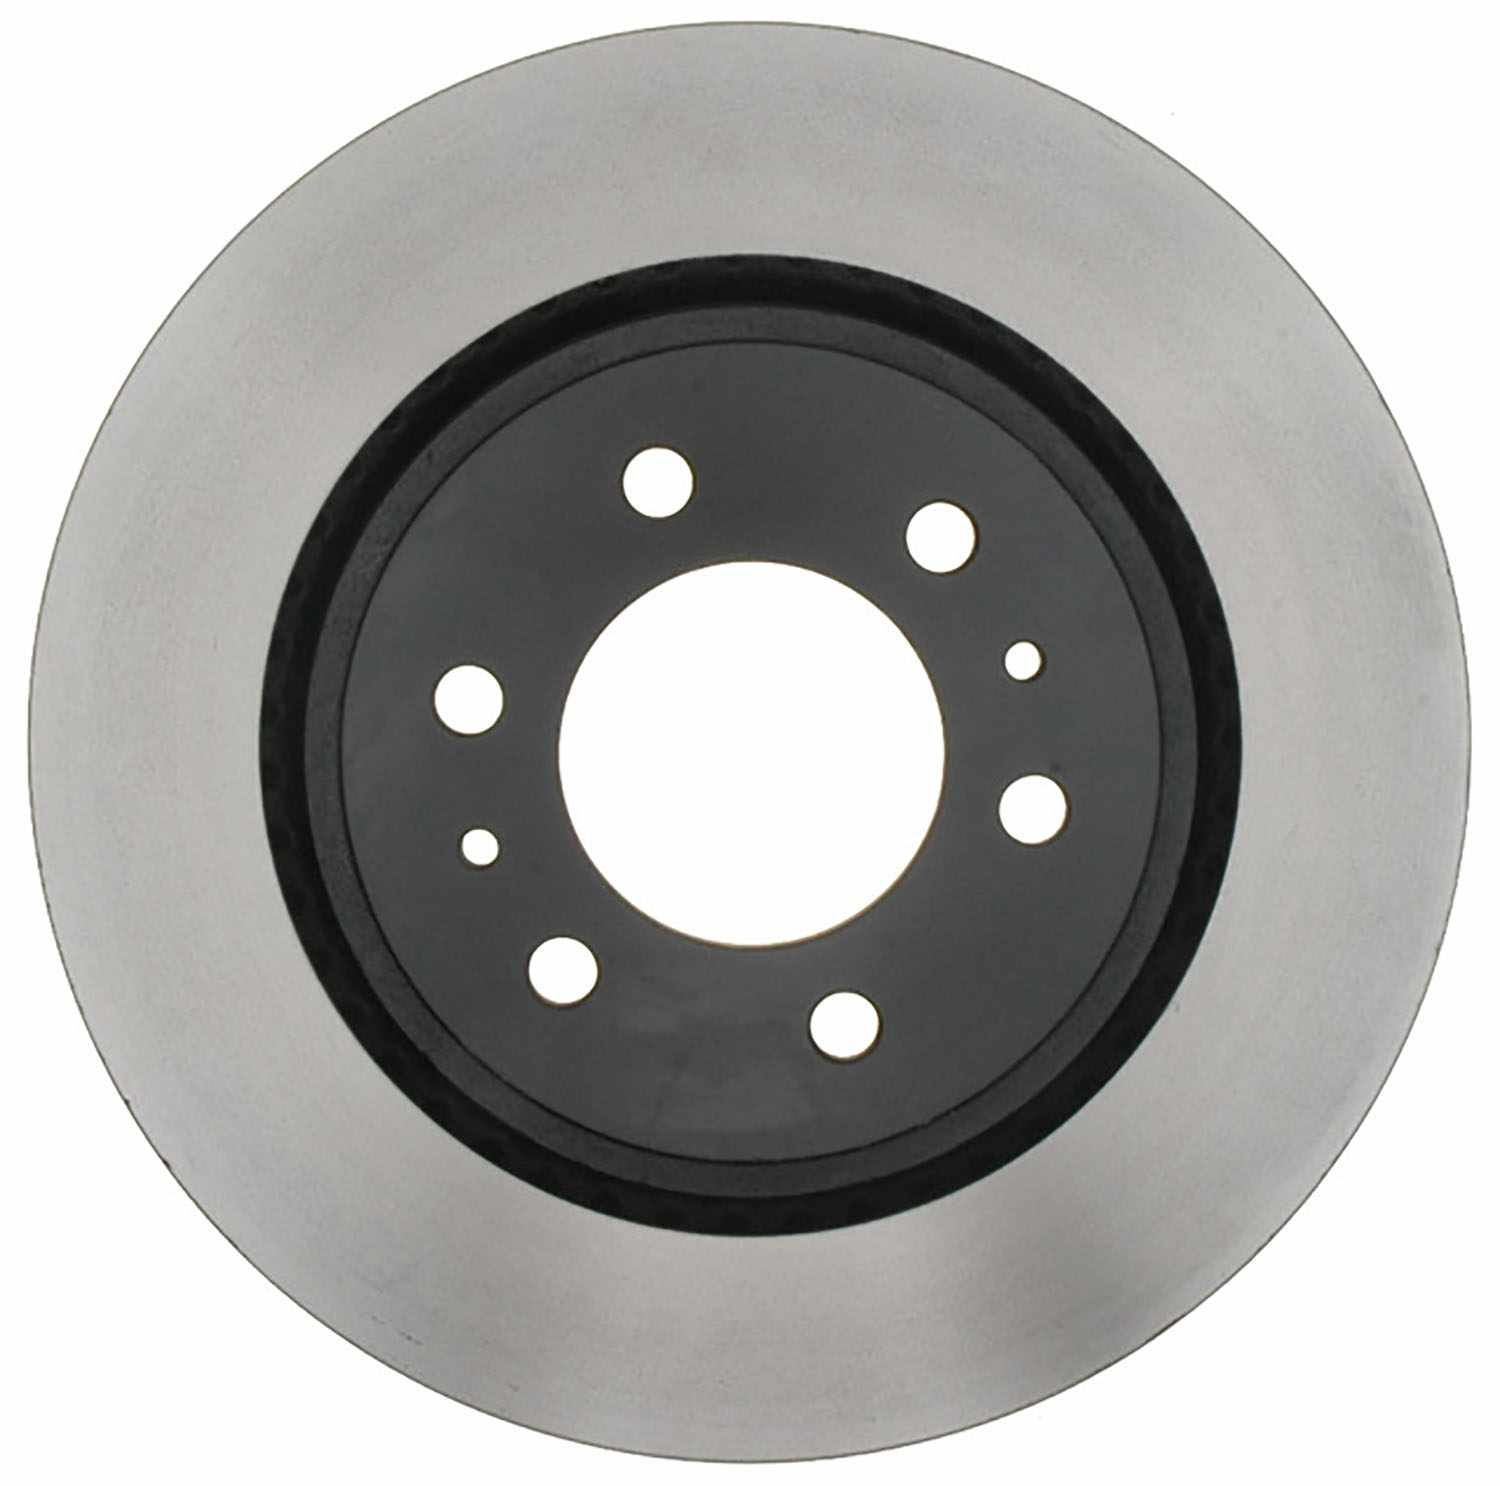 ACDELCO PROFESSIONAL BRAKES - Disc Brake Rotor (Front) - ADU 18A2791